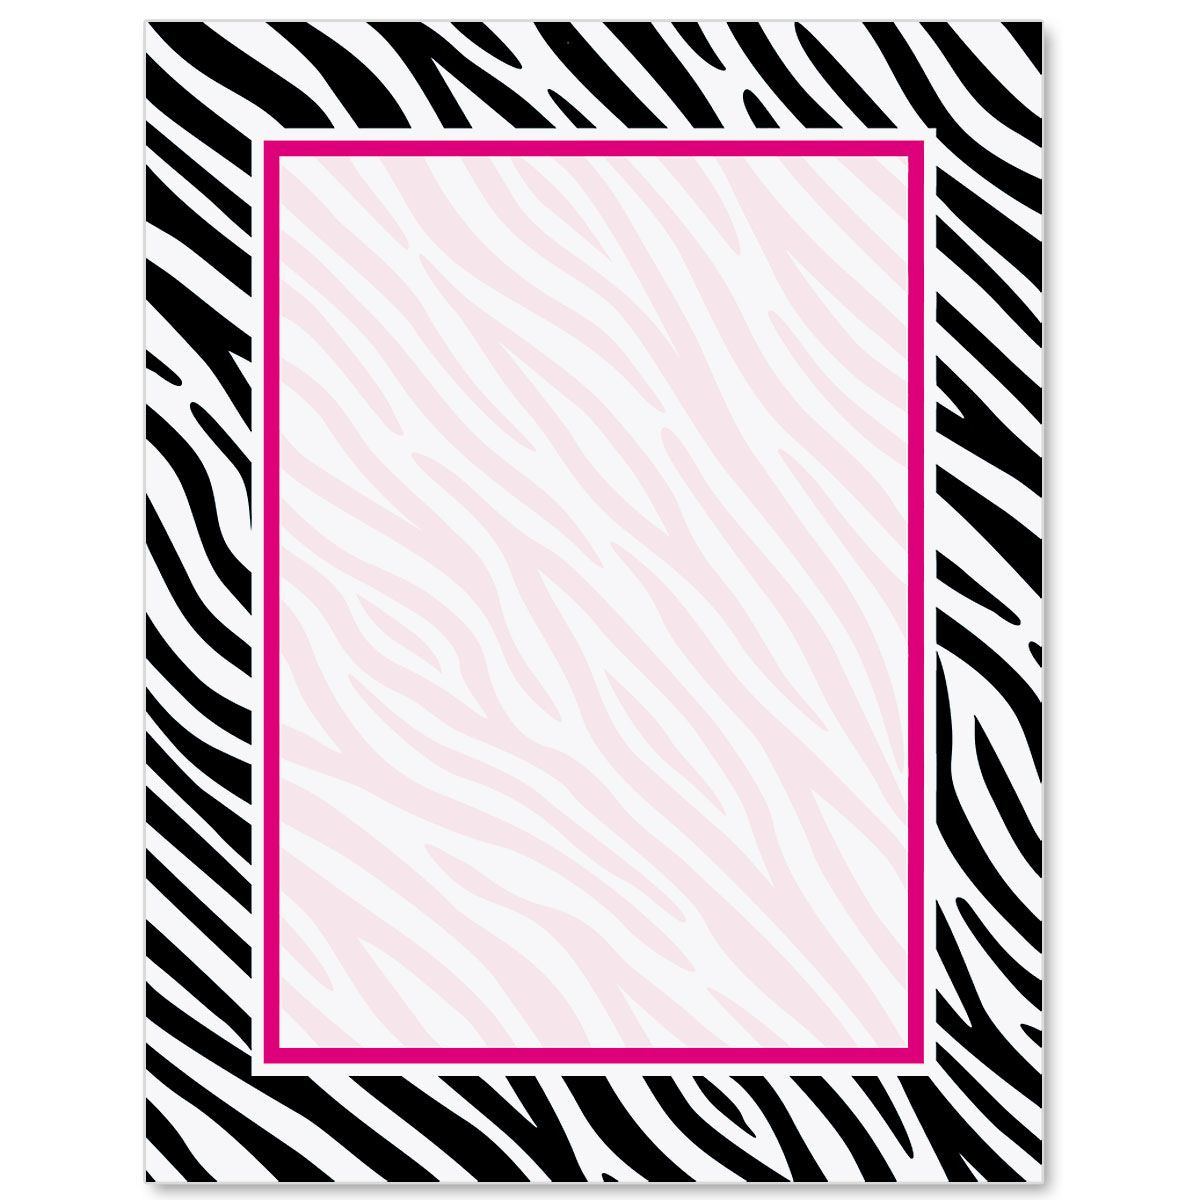 Zebra Print Border Papers Borders For Paper Clip Art Borders